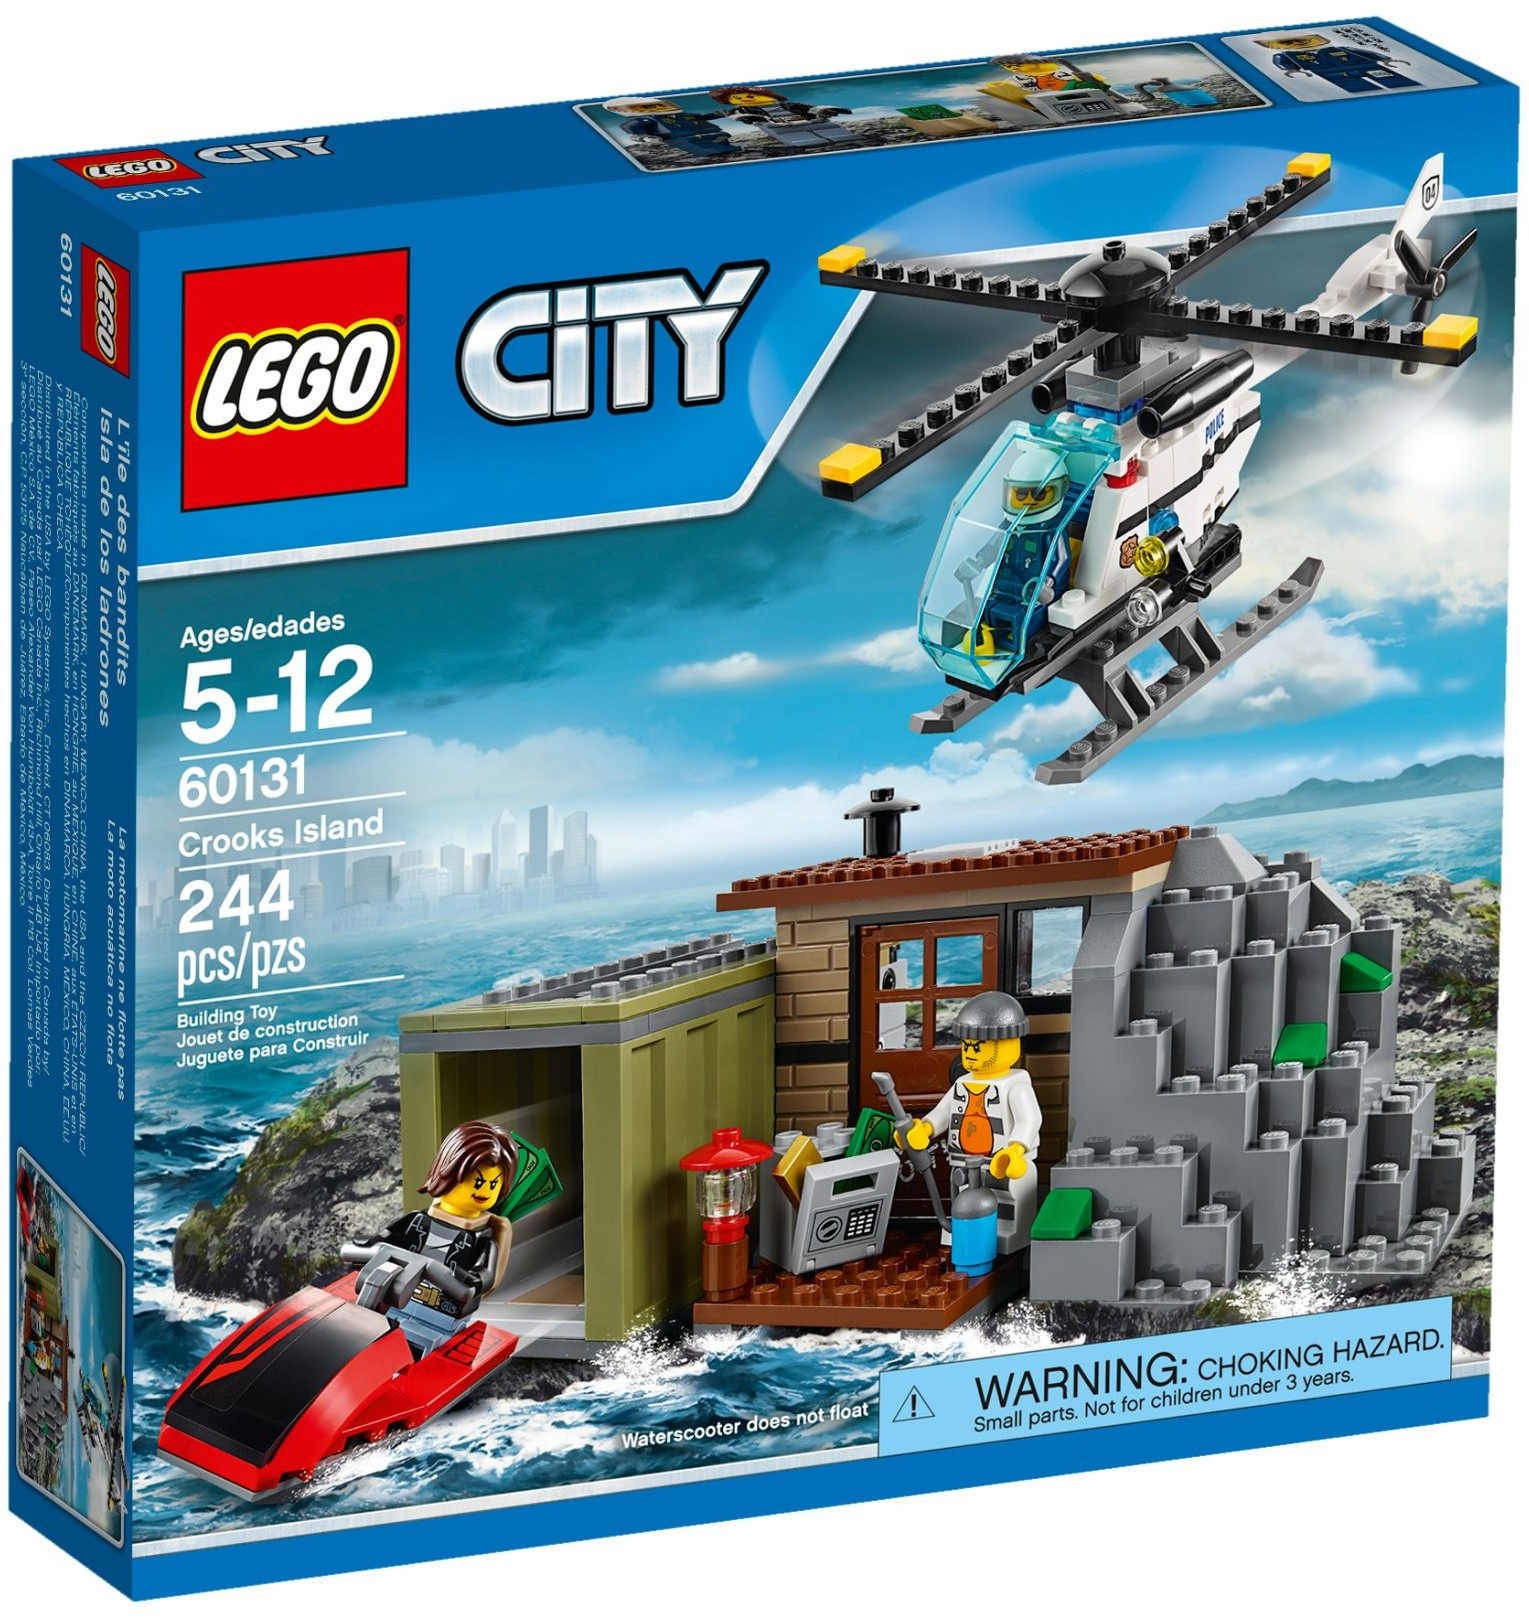 LEGO # 60131 CITY Crooks Island